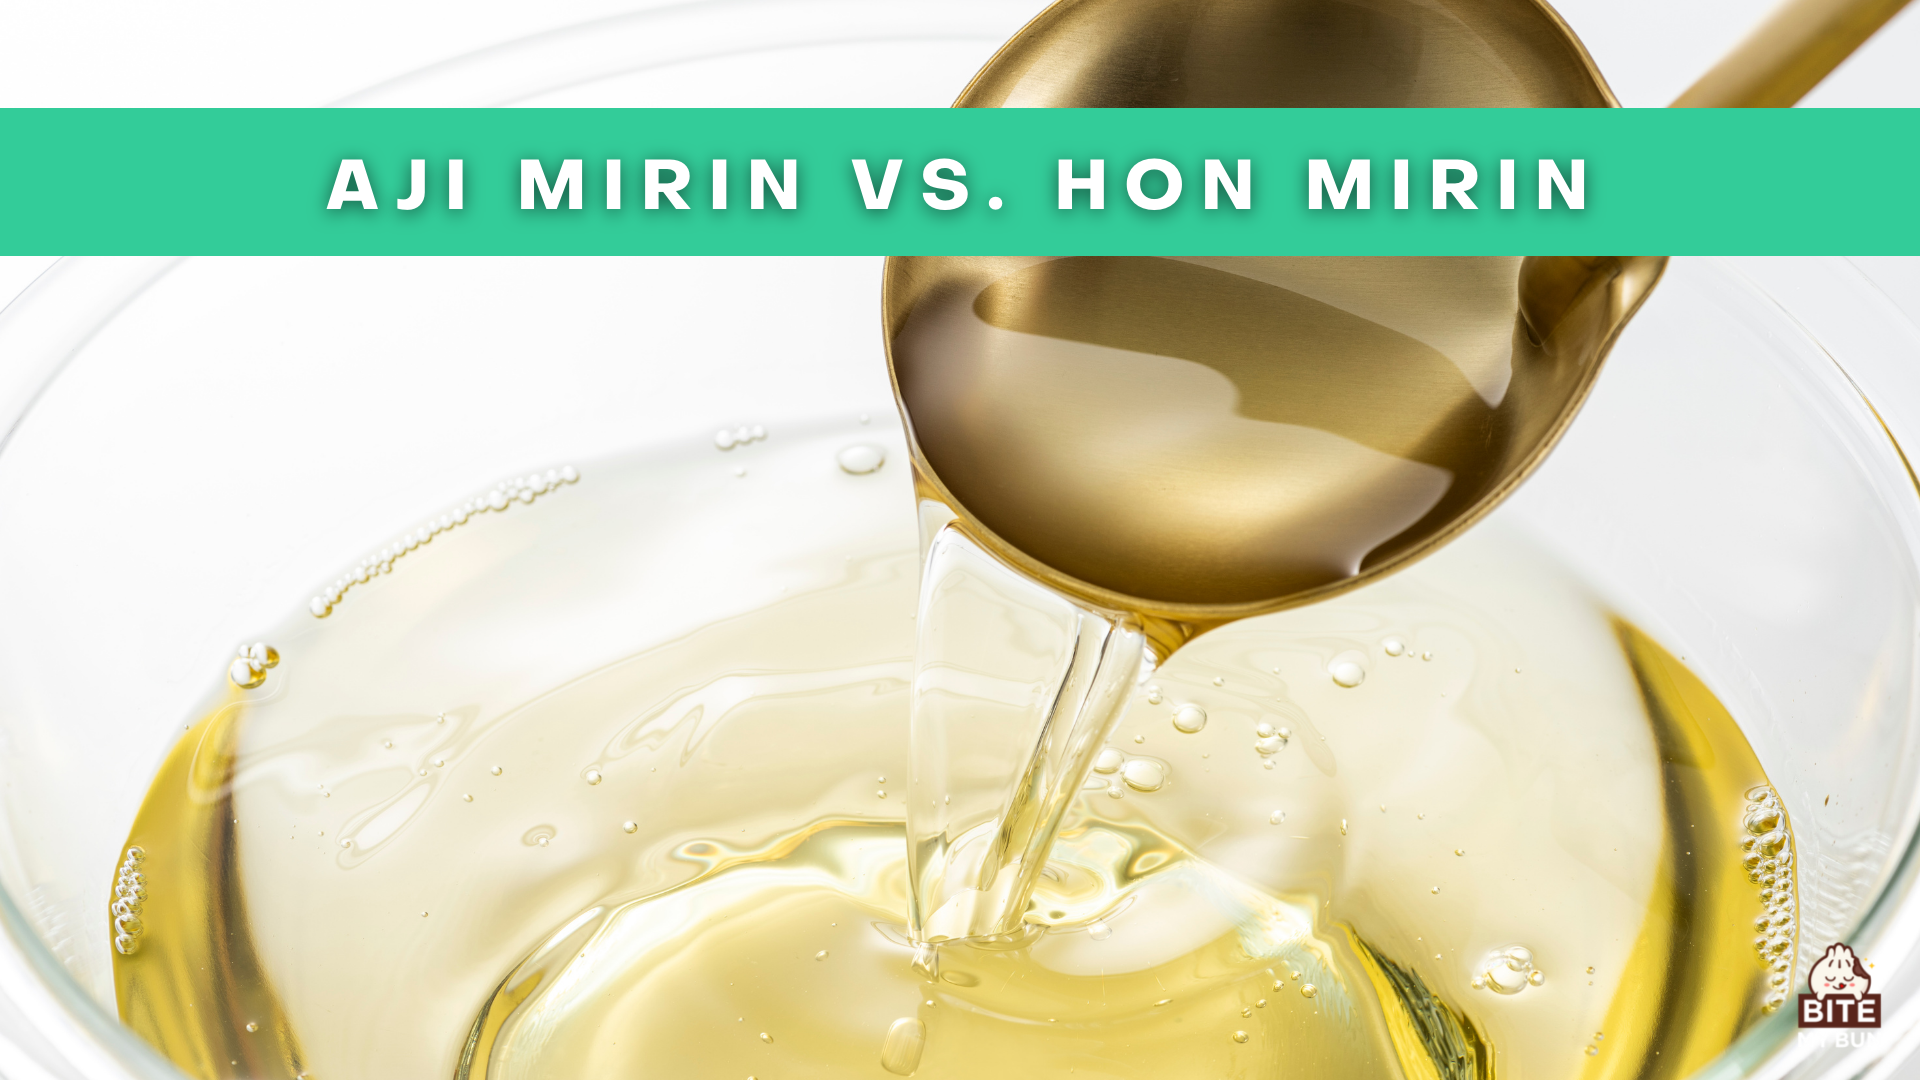 Aji mirin vs. hon mirin   They are not the same and it matters!